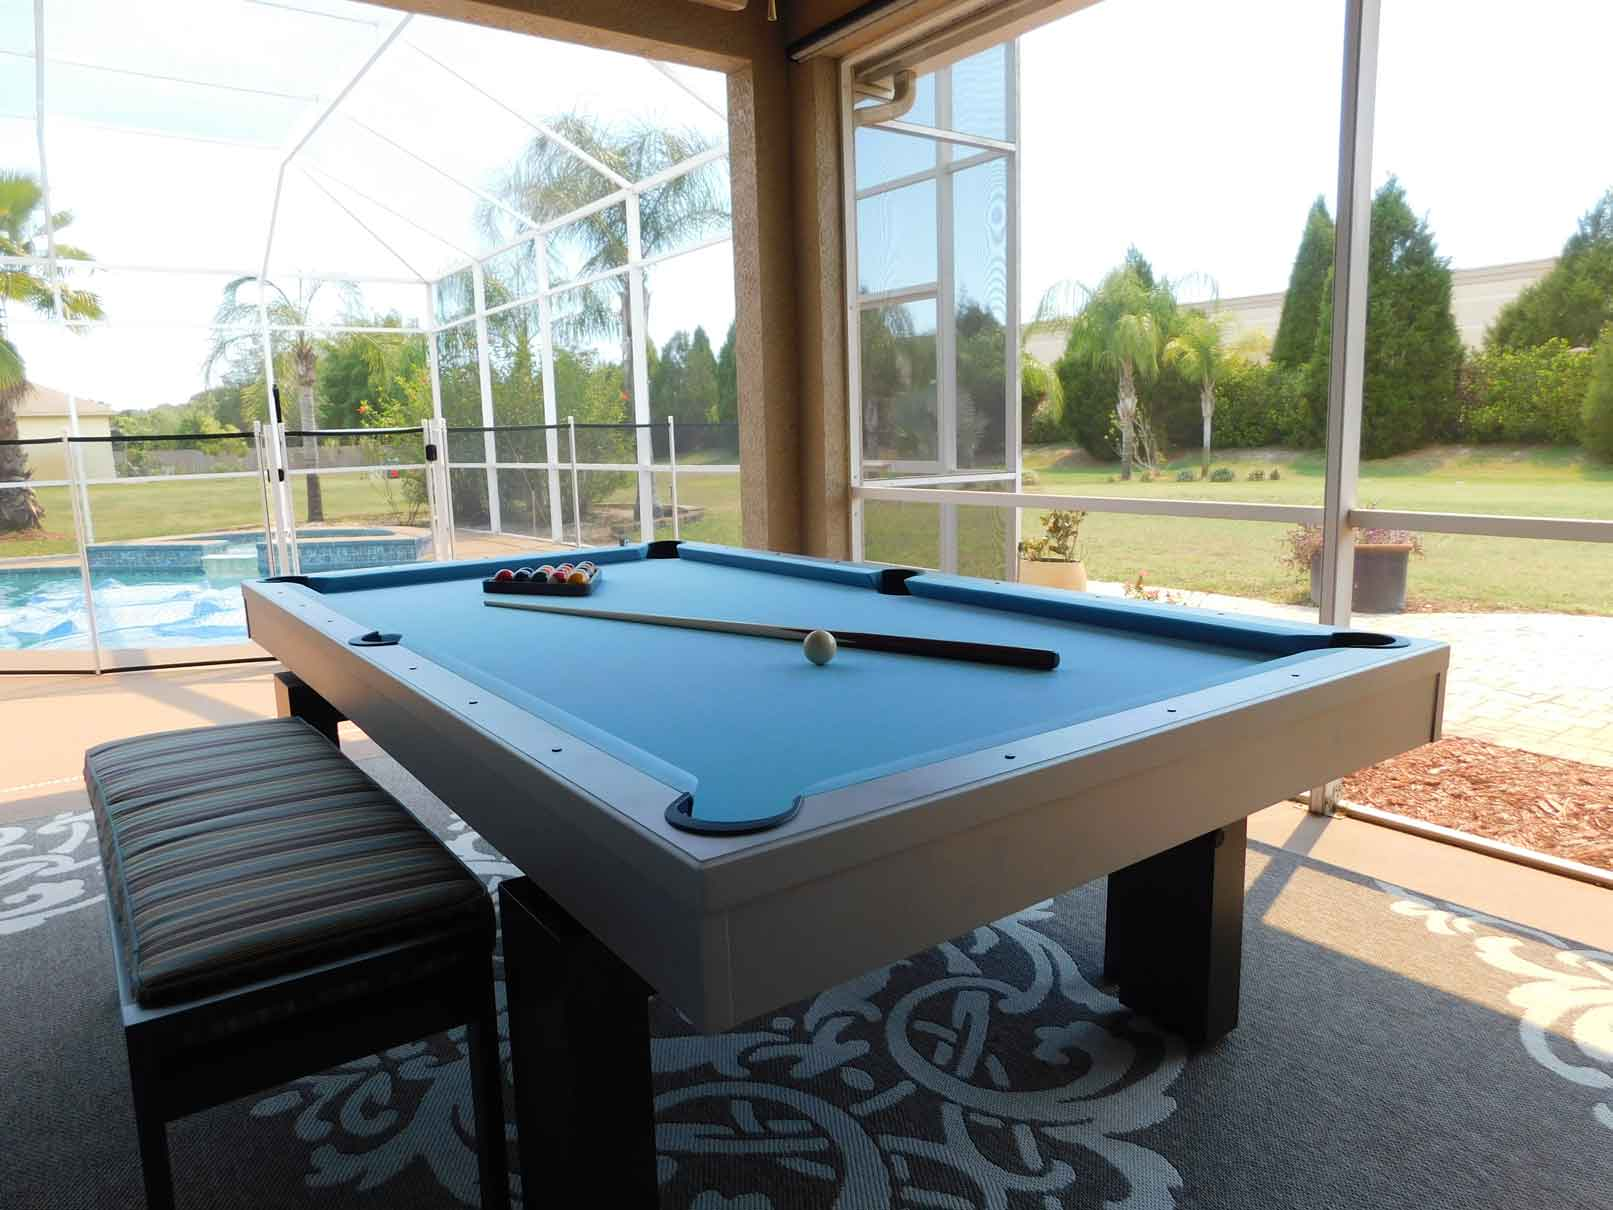 South Beach outdoor pool table with all weather bench by R&R Outdoors All Weather Billiards